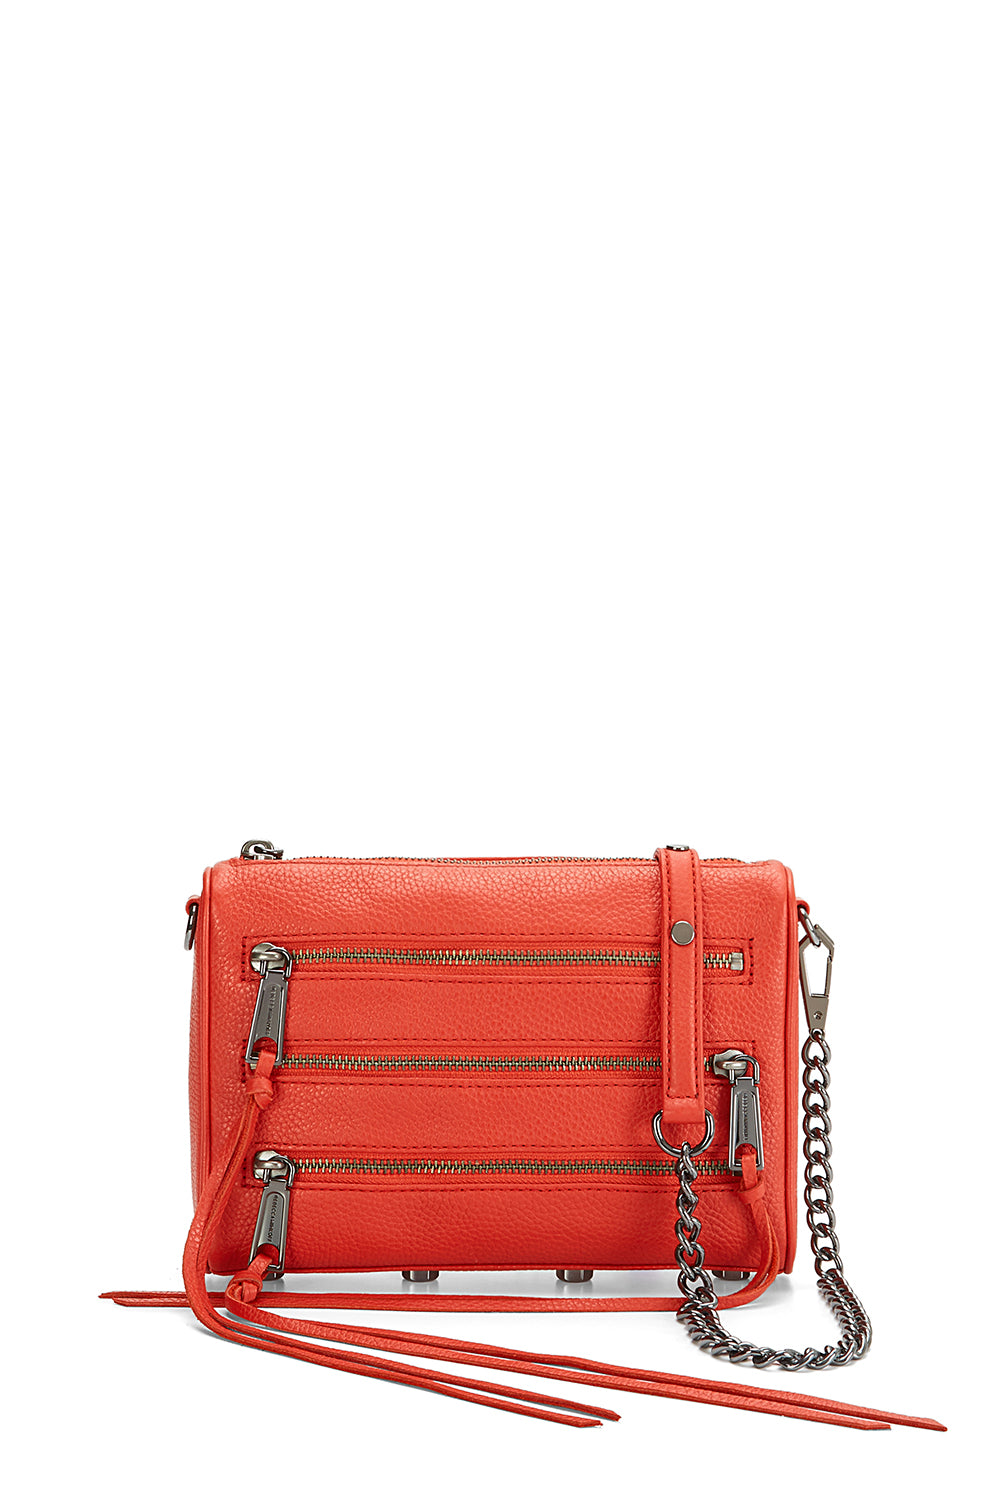 feb6941edc Mini 5 Zip Crossbody – Rebecca Minkoff